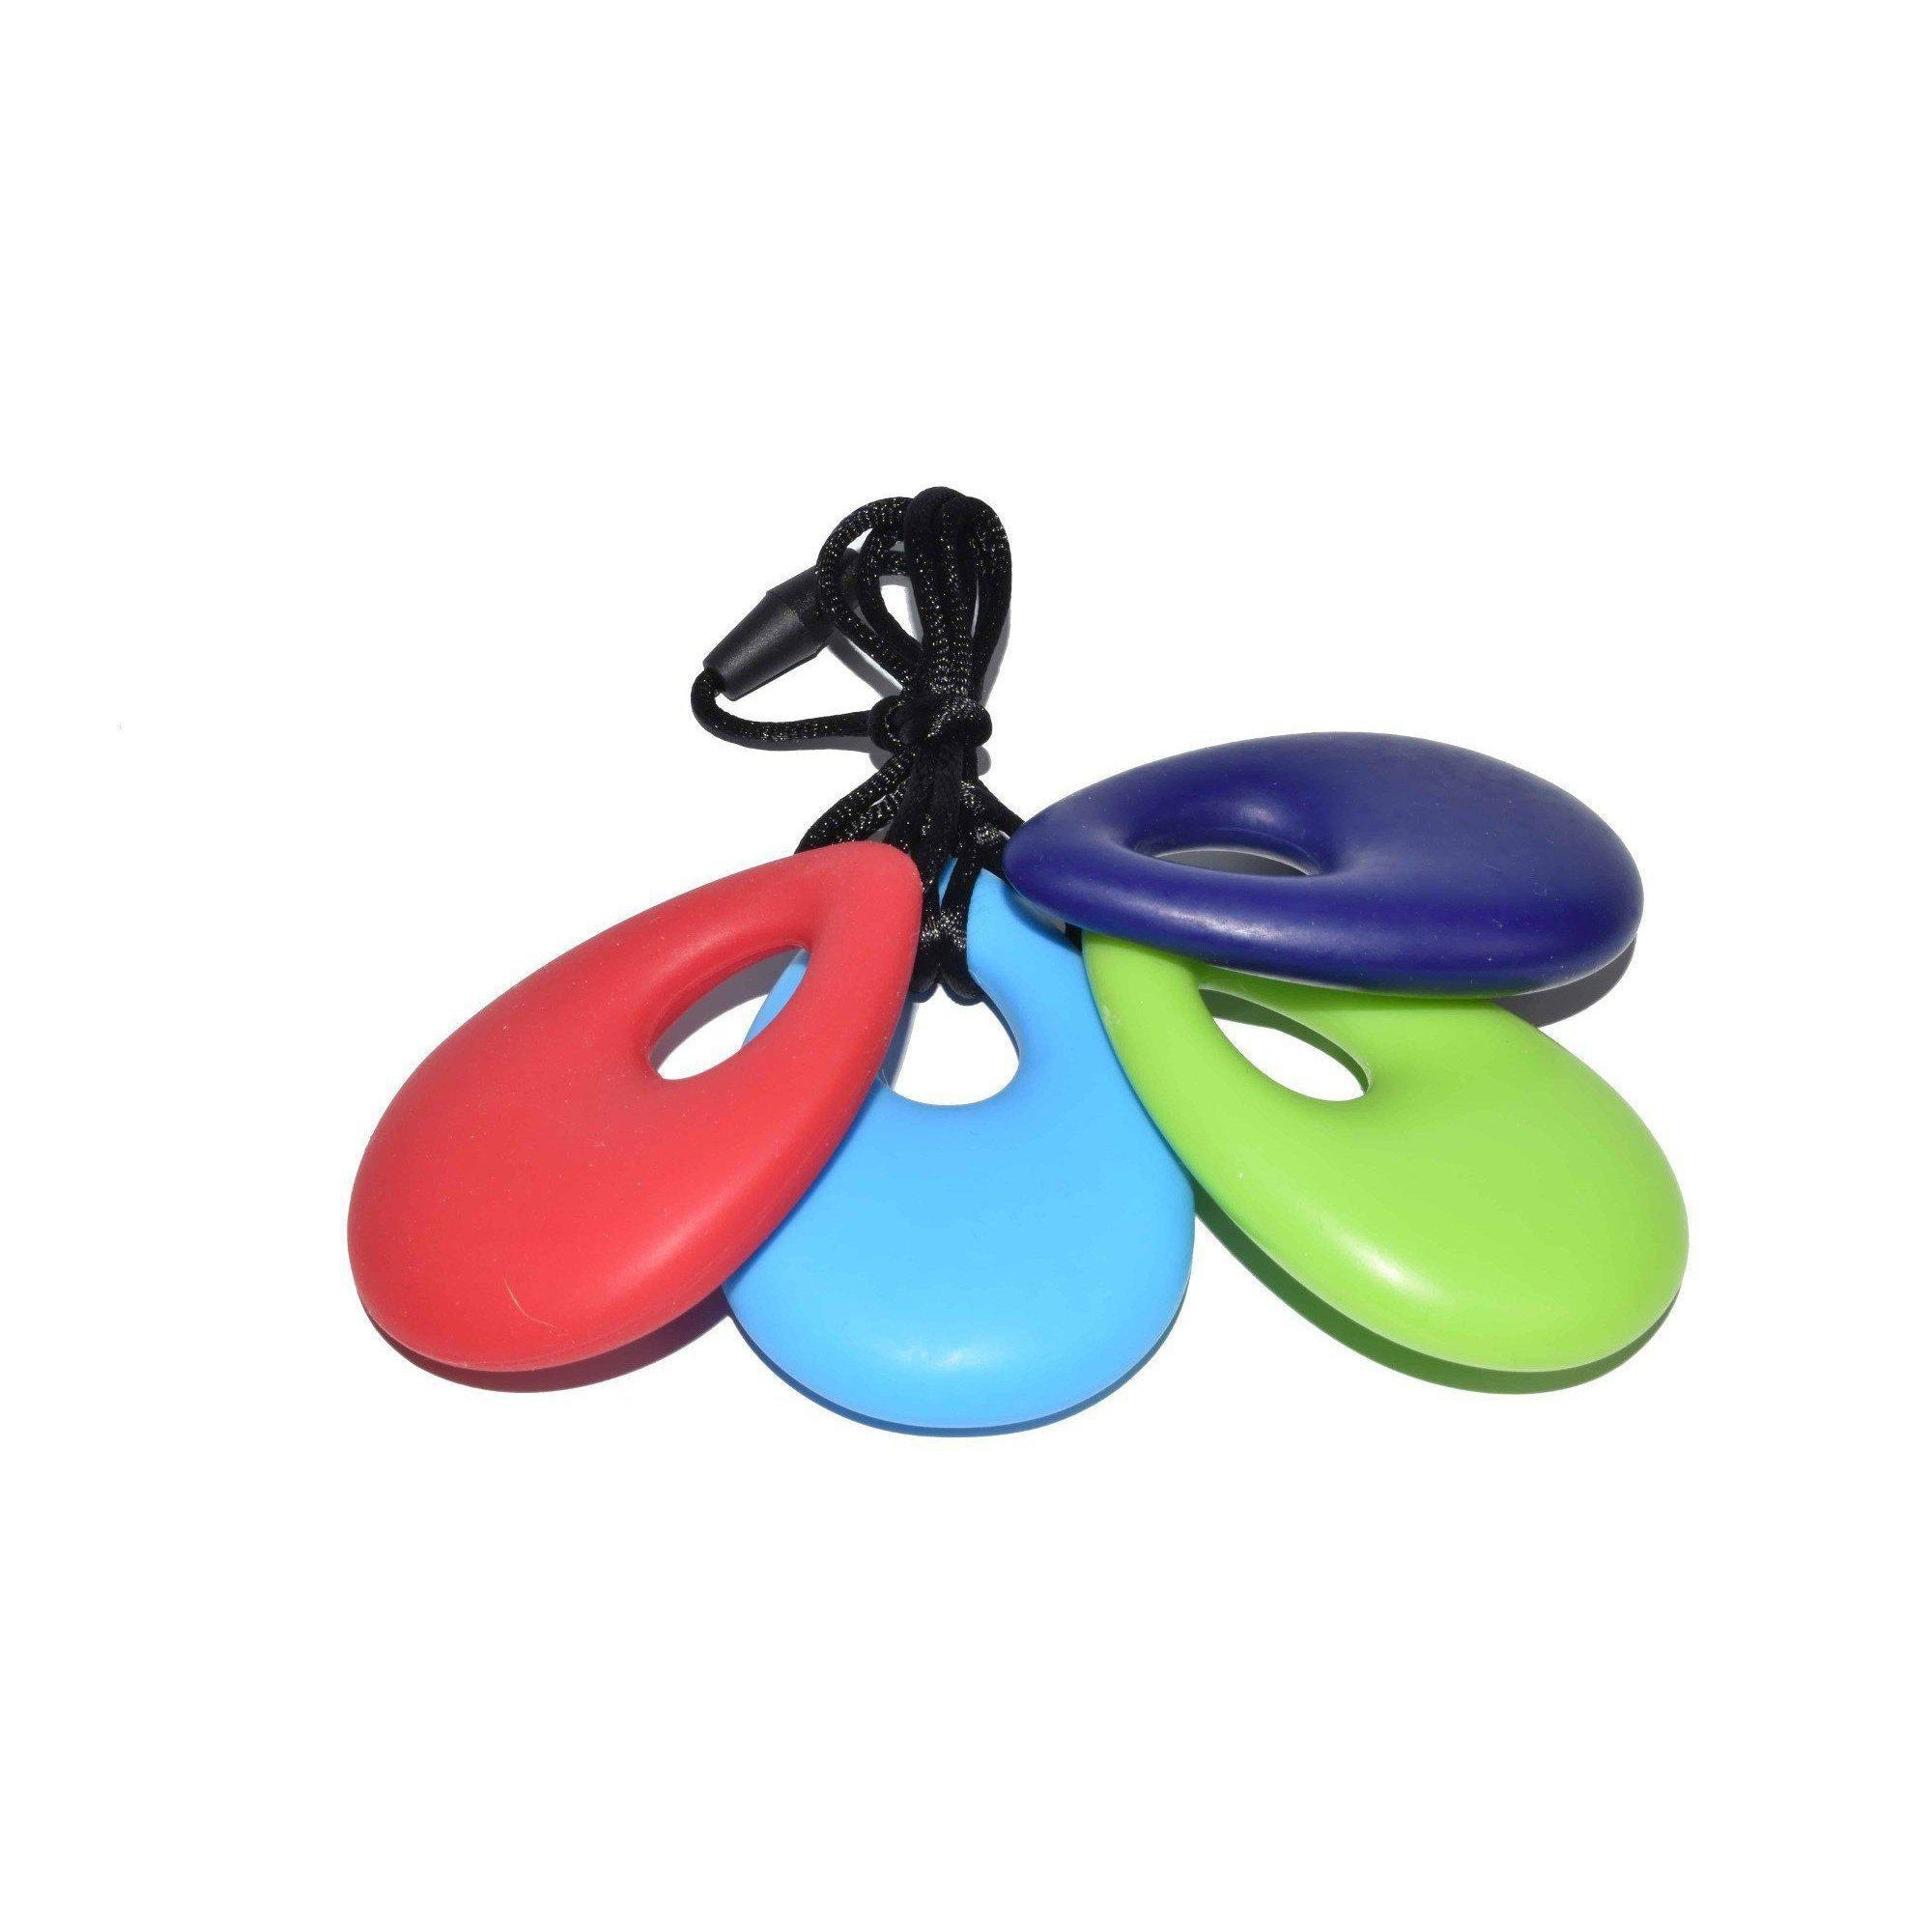 Factory Second buds oval- random colors- orig $9.99